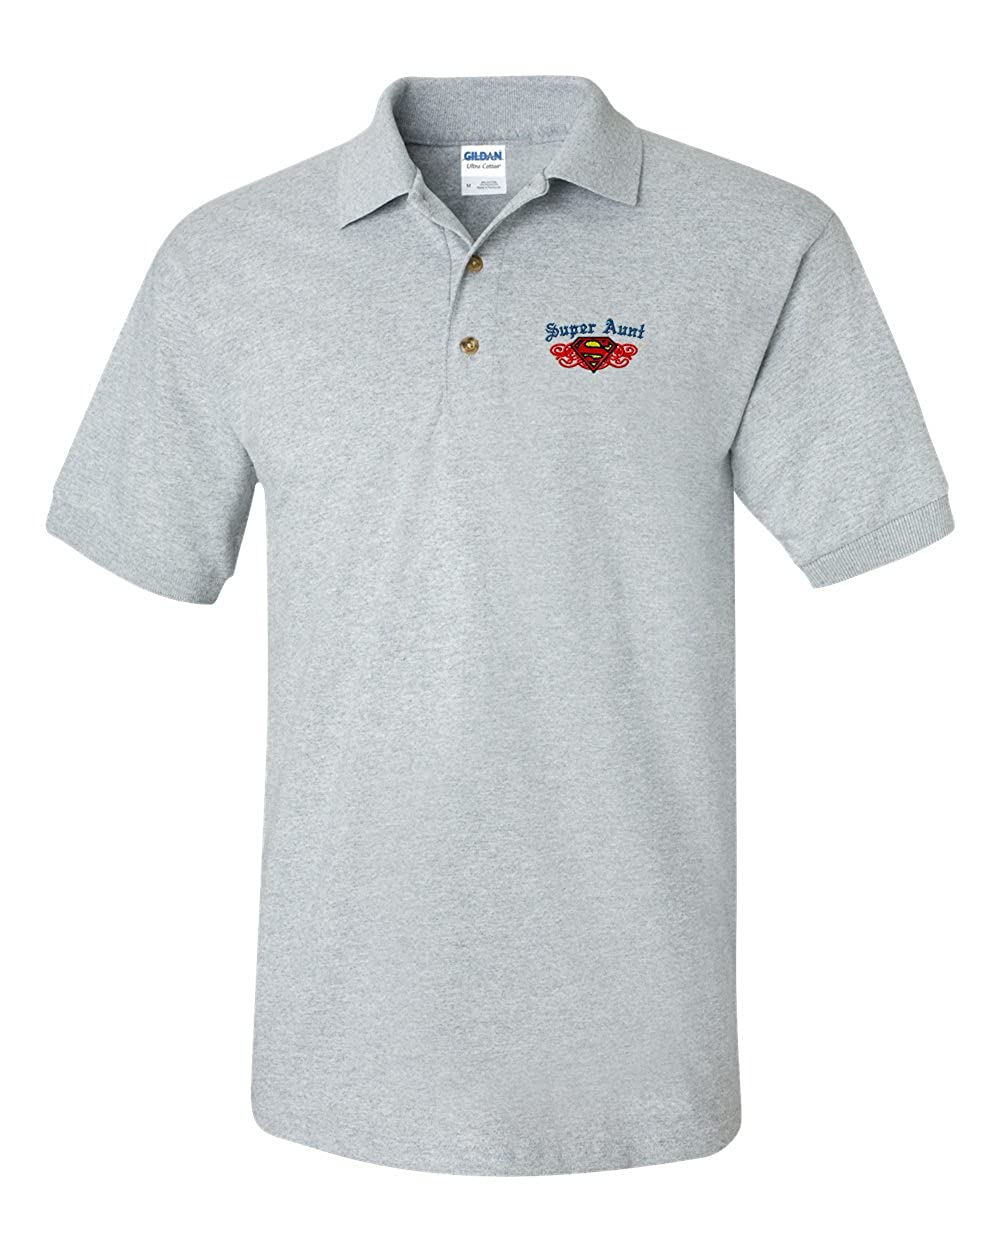 Super Aunt Custom Personalized Embroidery Embroidered Golf Polo